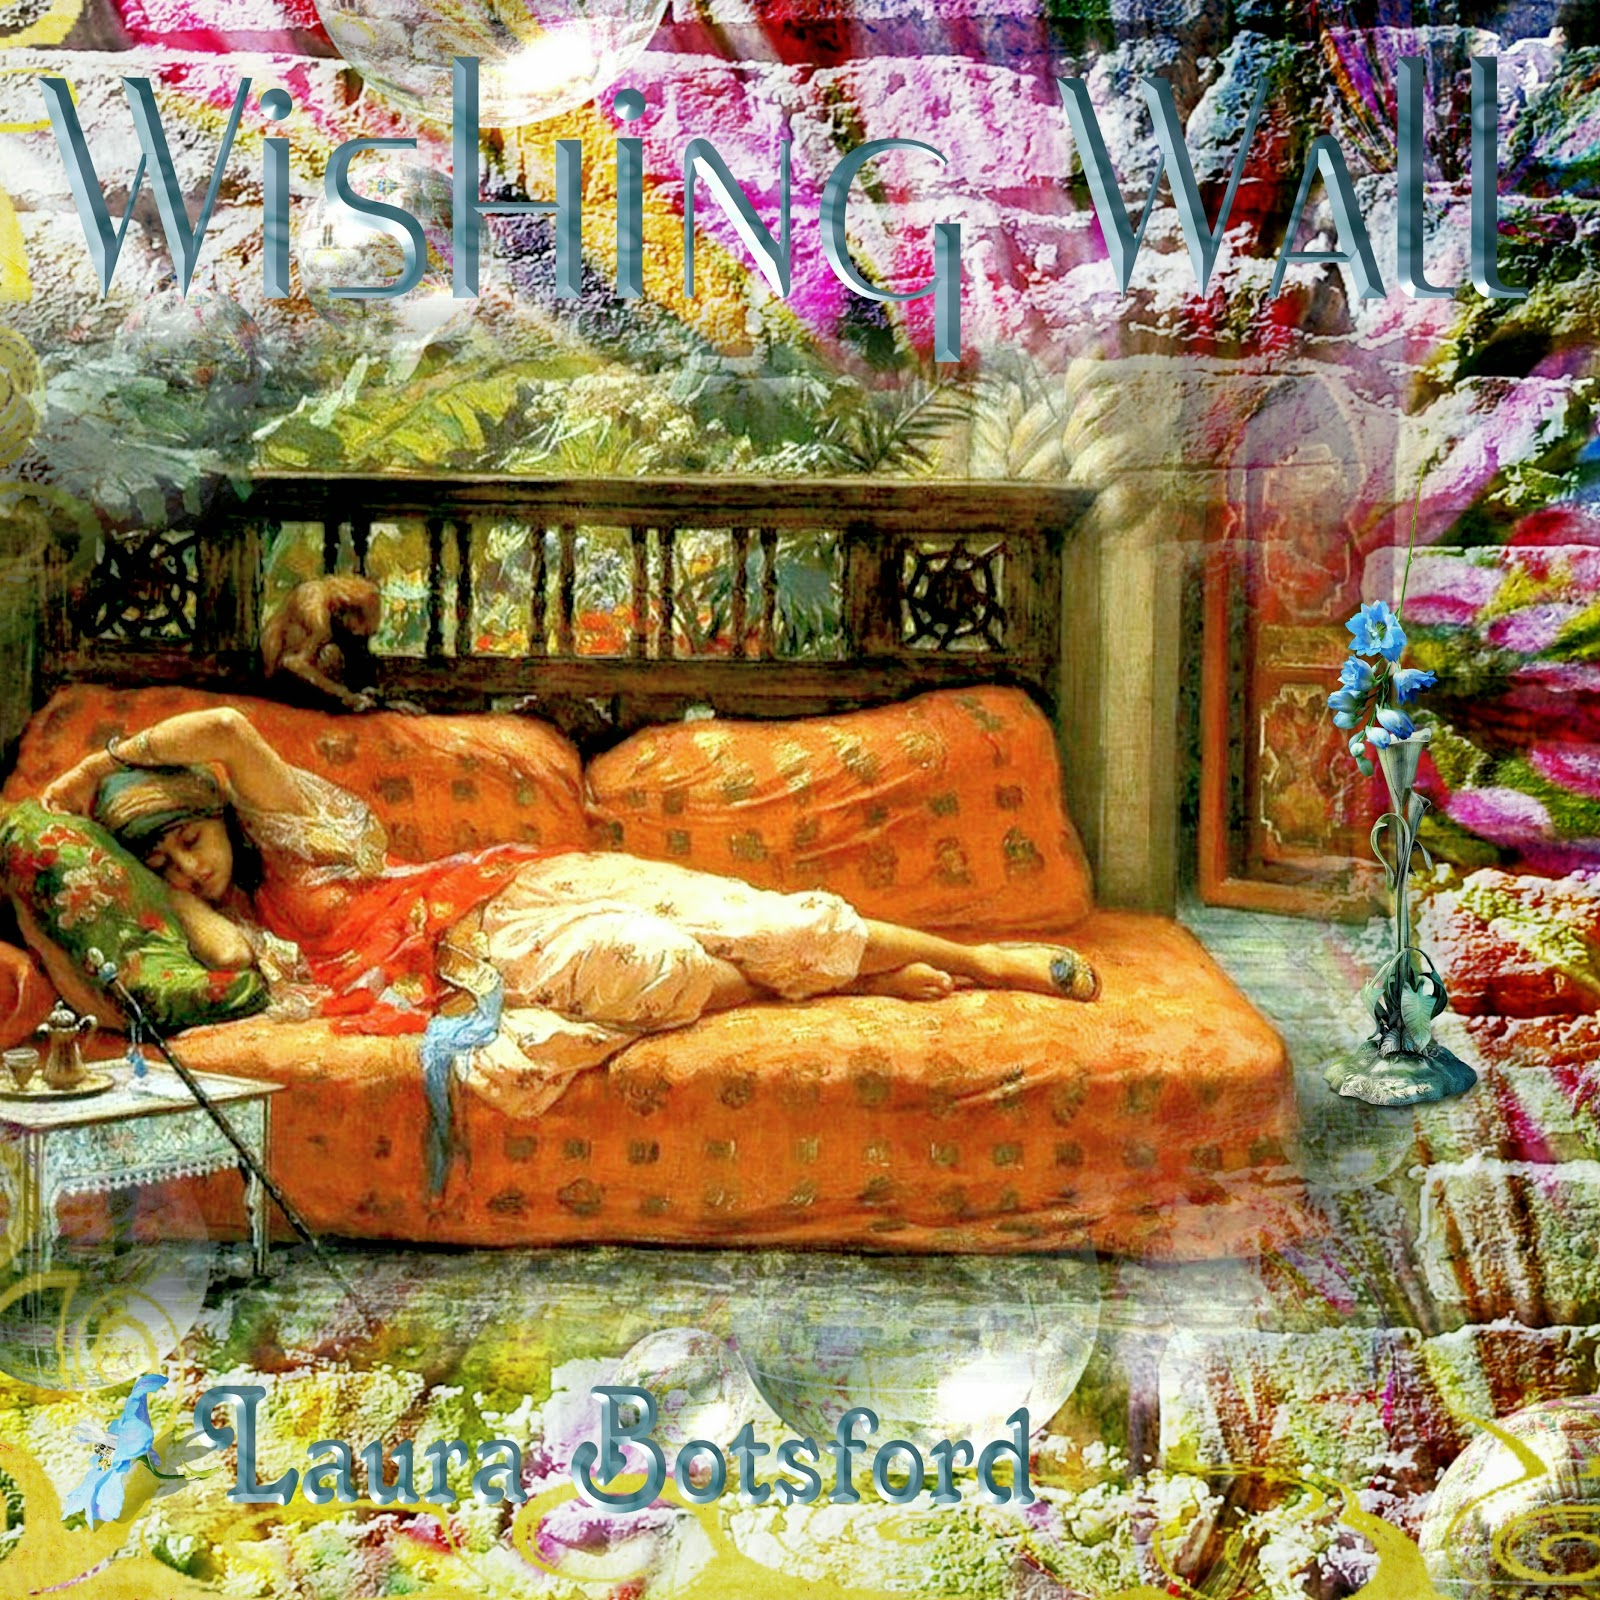 http://www.amazon.com/Wishing-Wall-Laura-Botsford/dp/B00EYAKMNM/ref=sr_1_2?s=dmusic&ie=UTF8&qid=1396933782&sr=1-2&keywords=Laura+Botsford